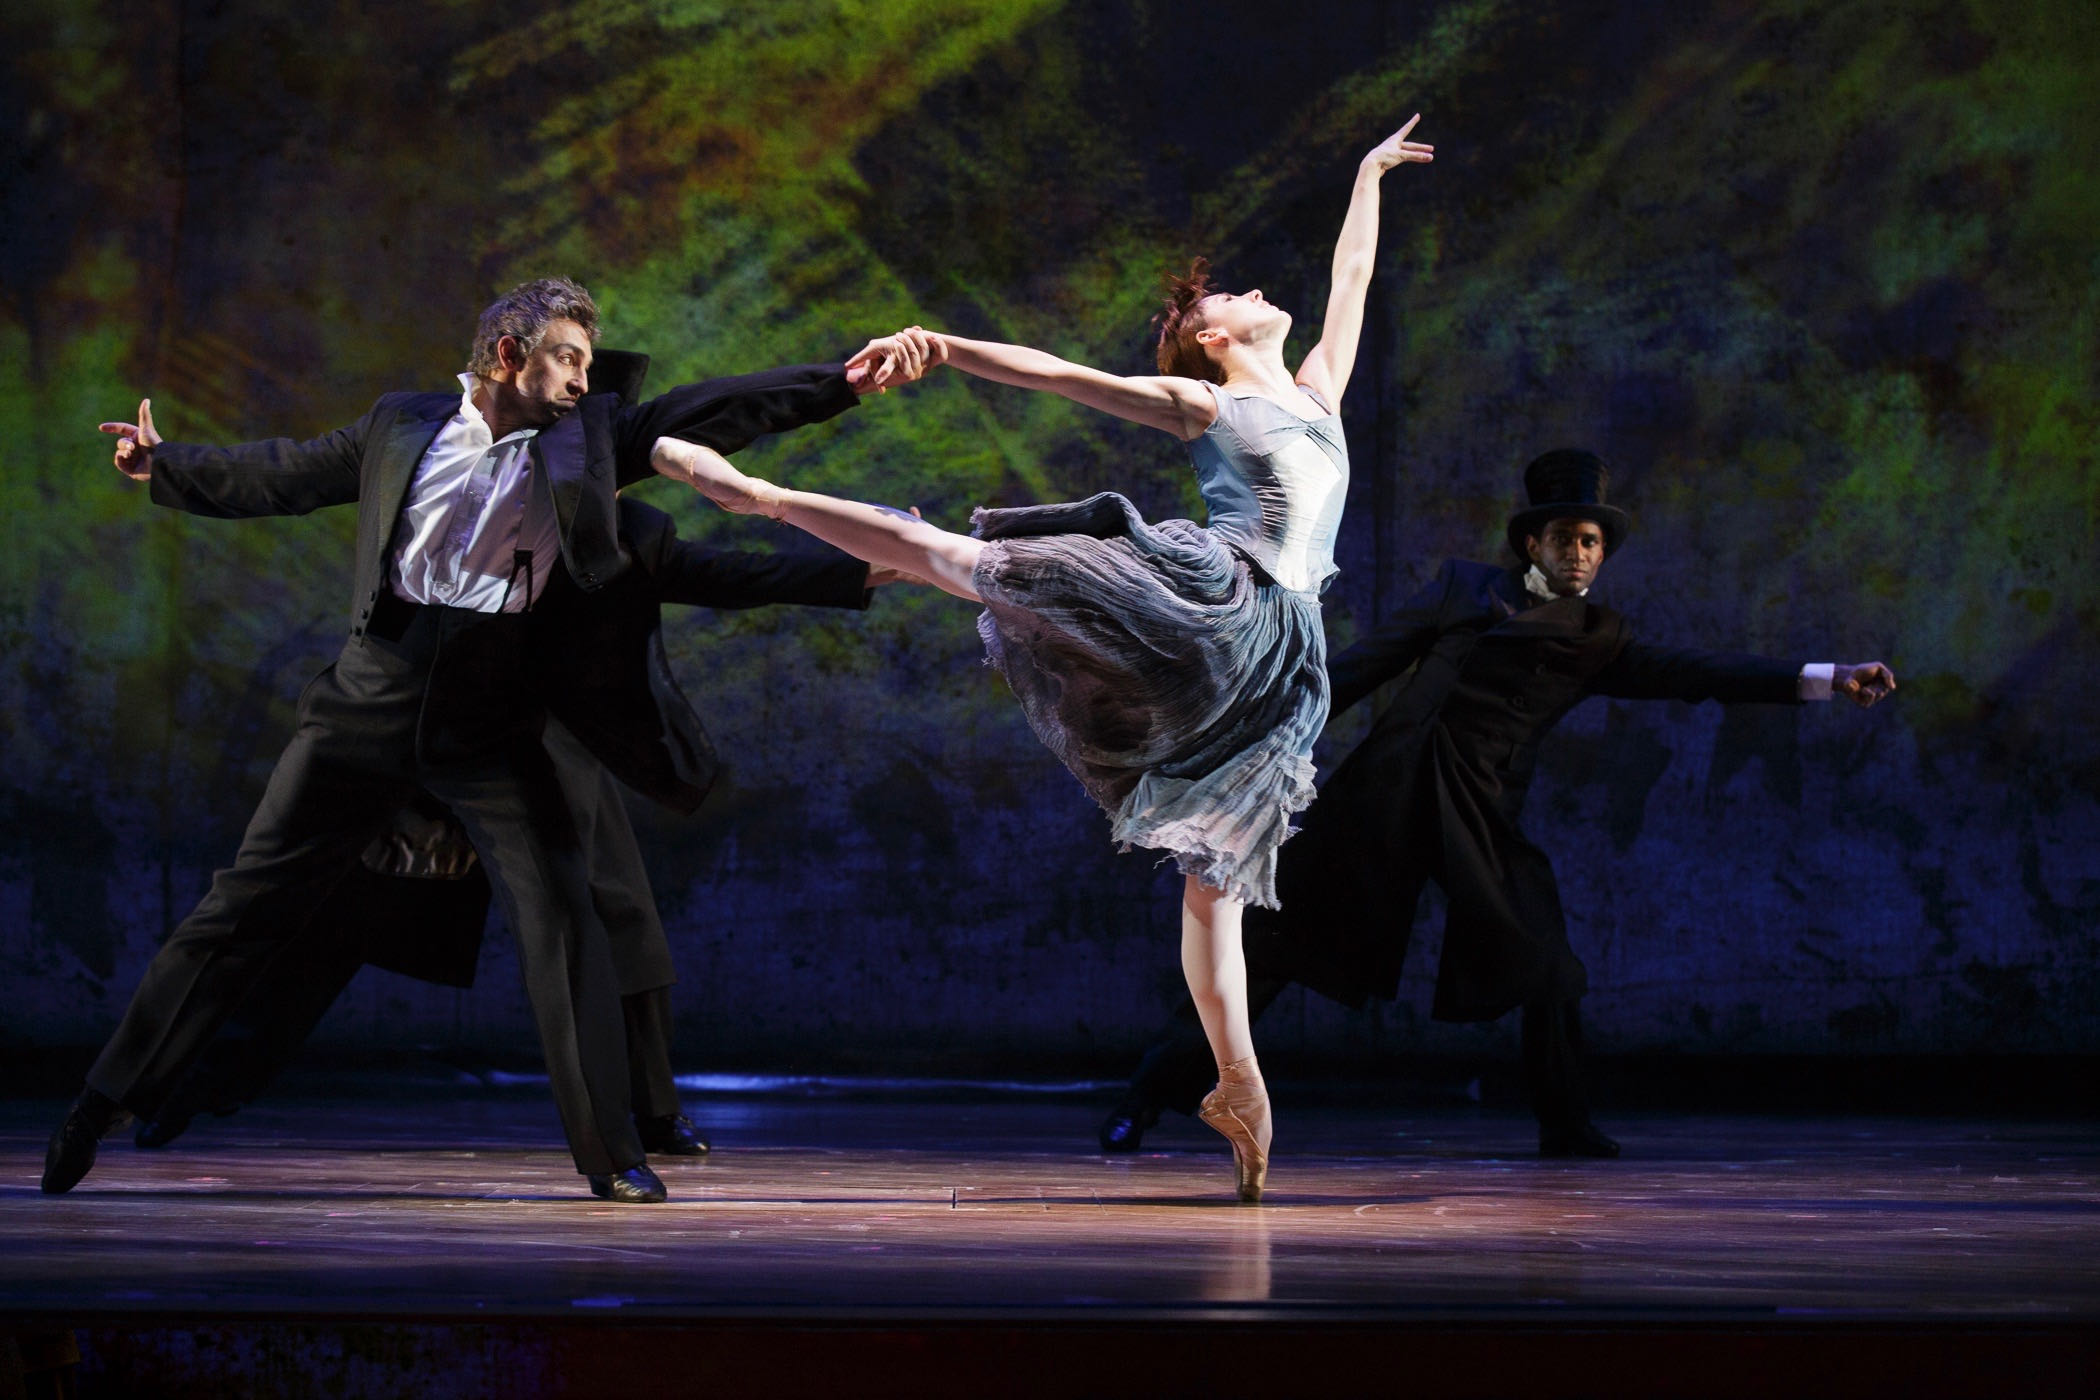 Tiler Peck in a stunning arabesque surrounded by two men.